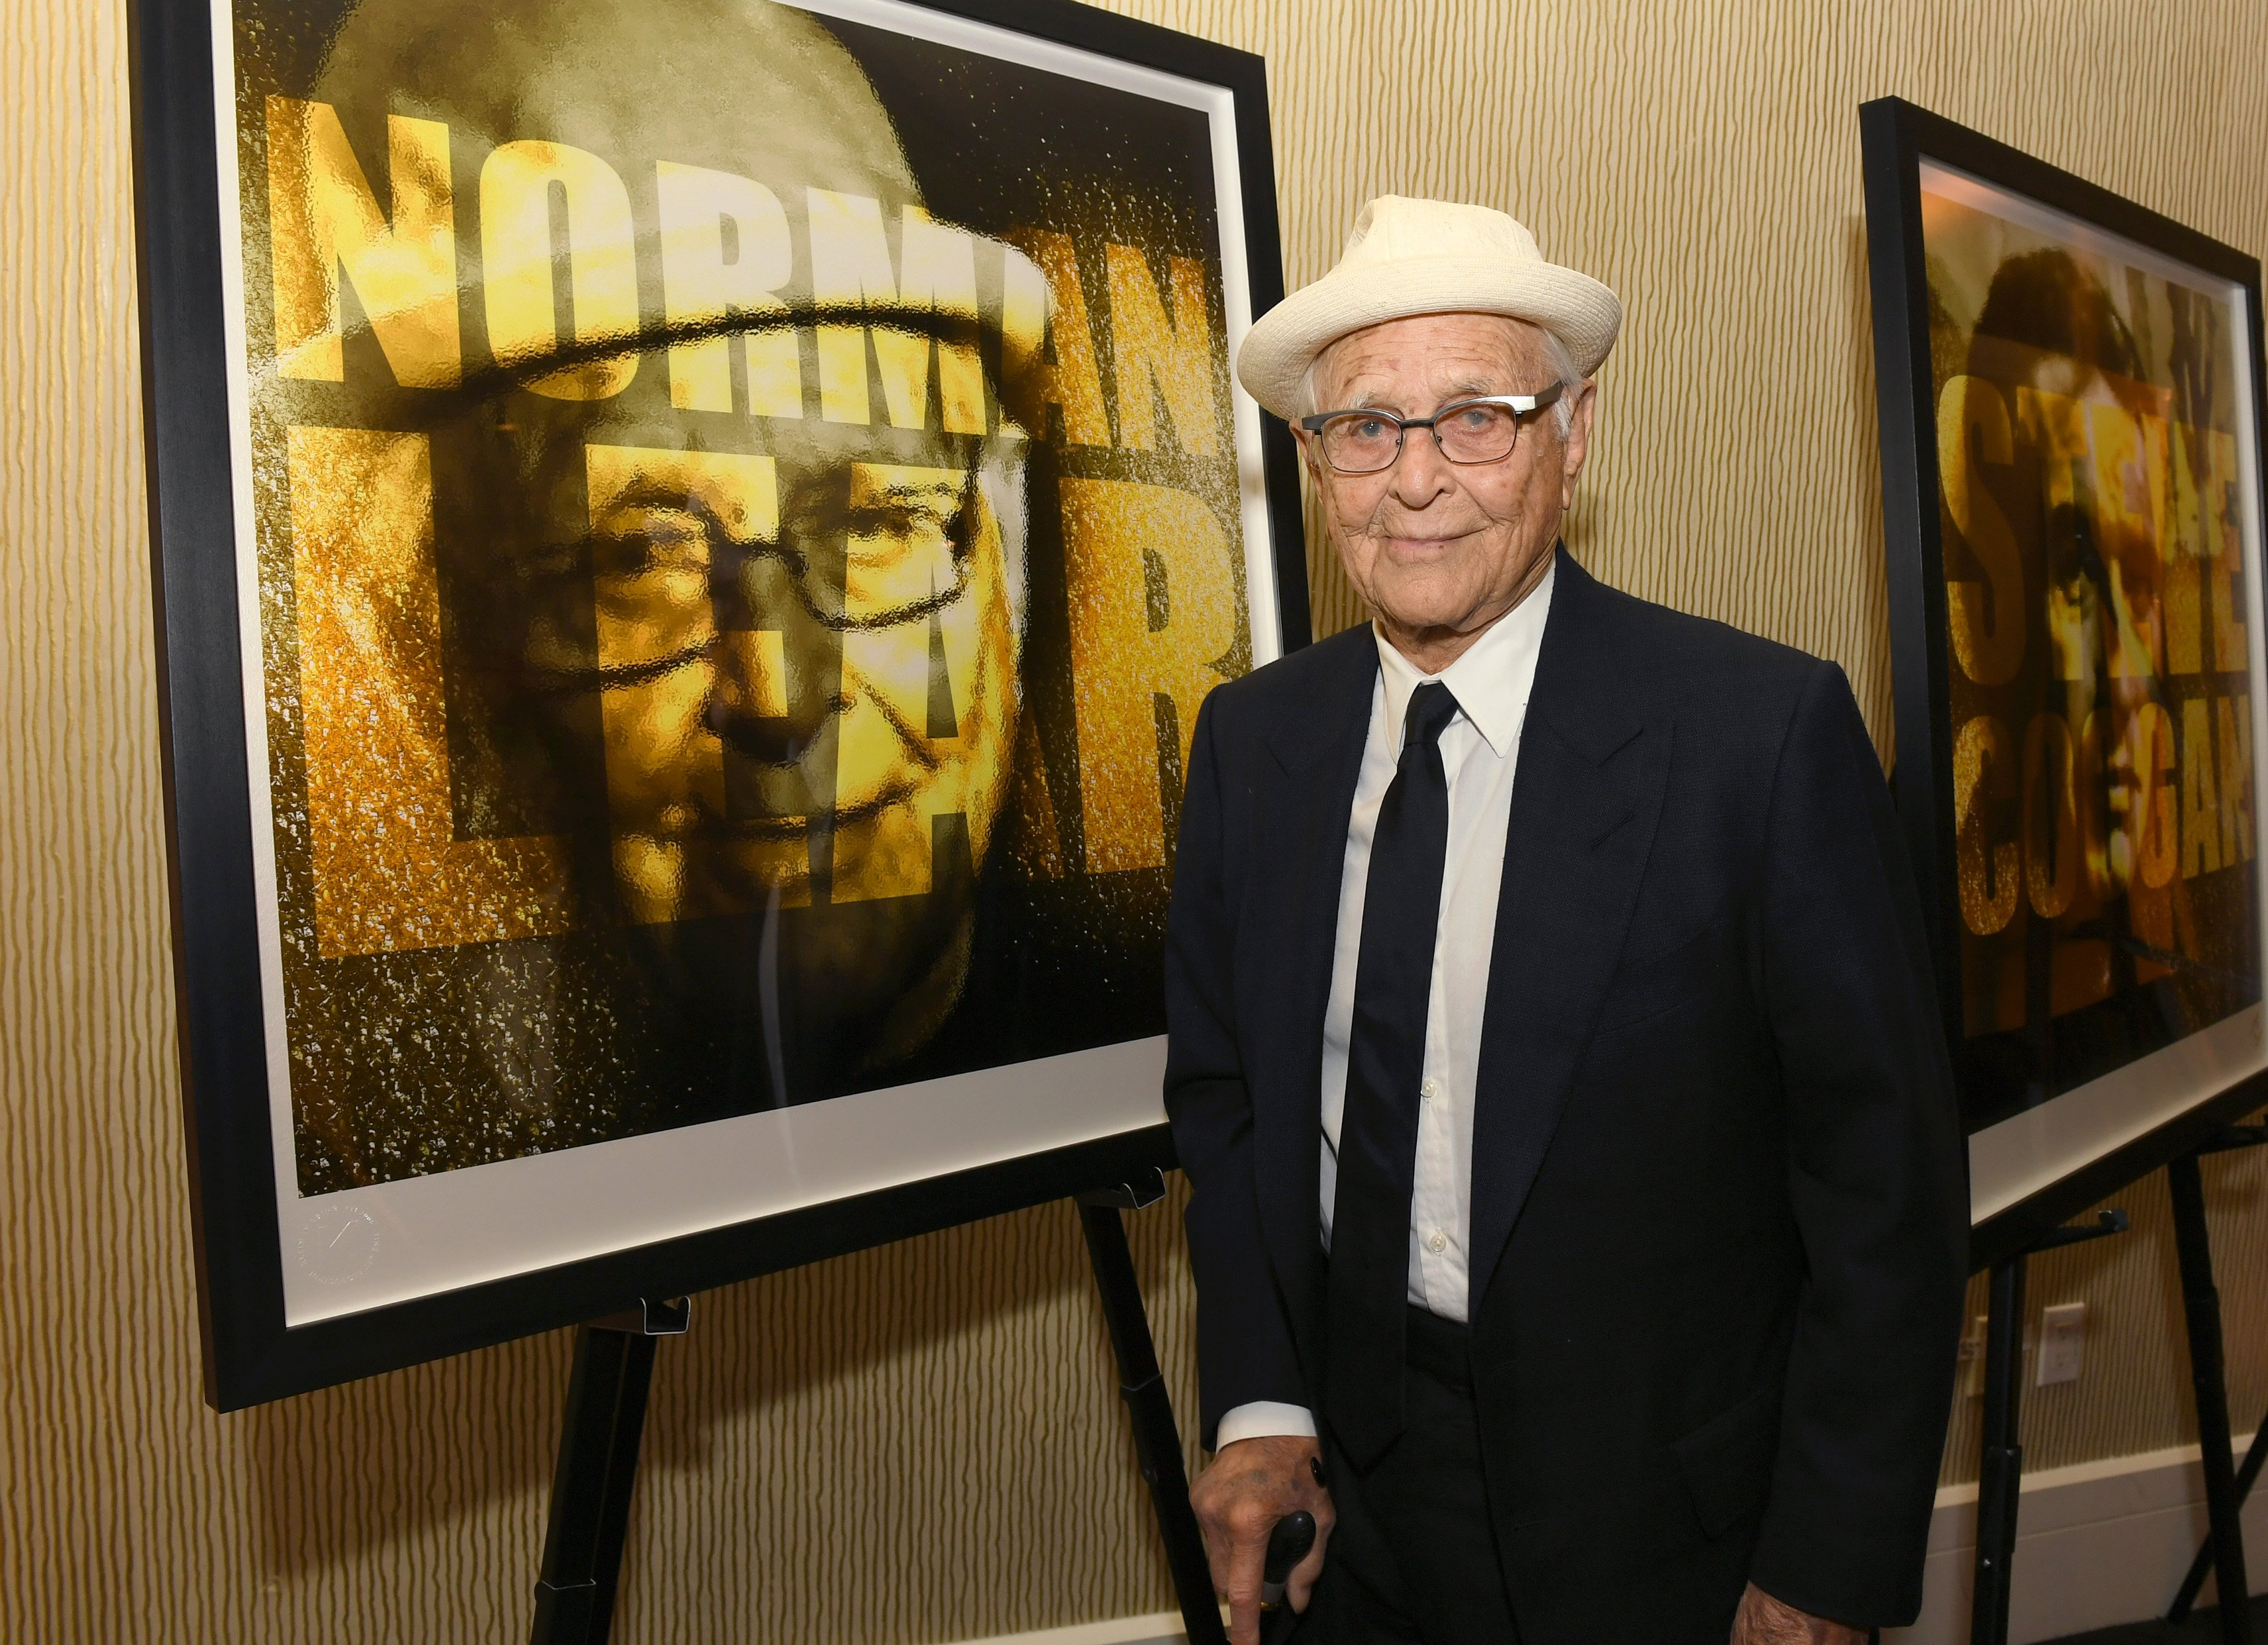 Norman Lear Image Source: Getty Images.